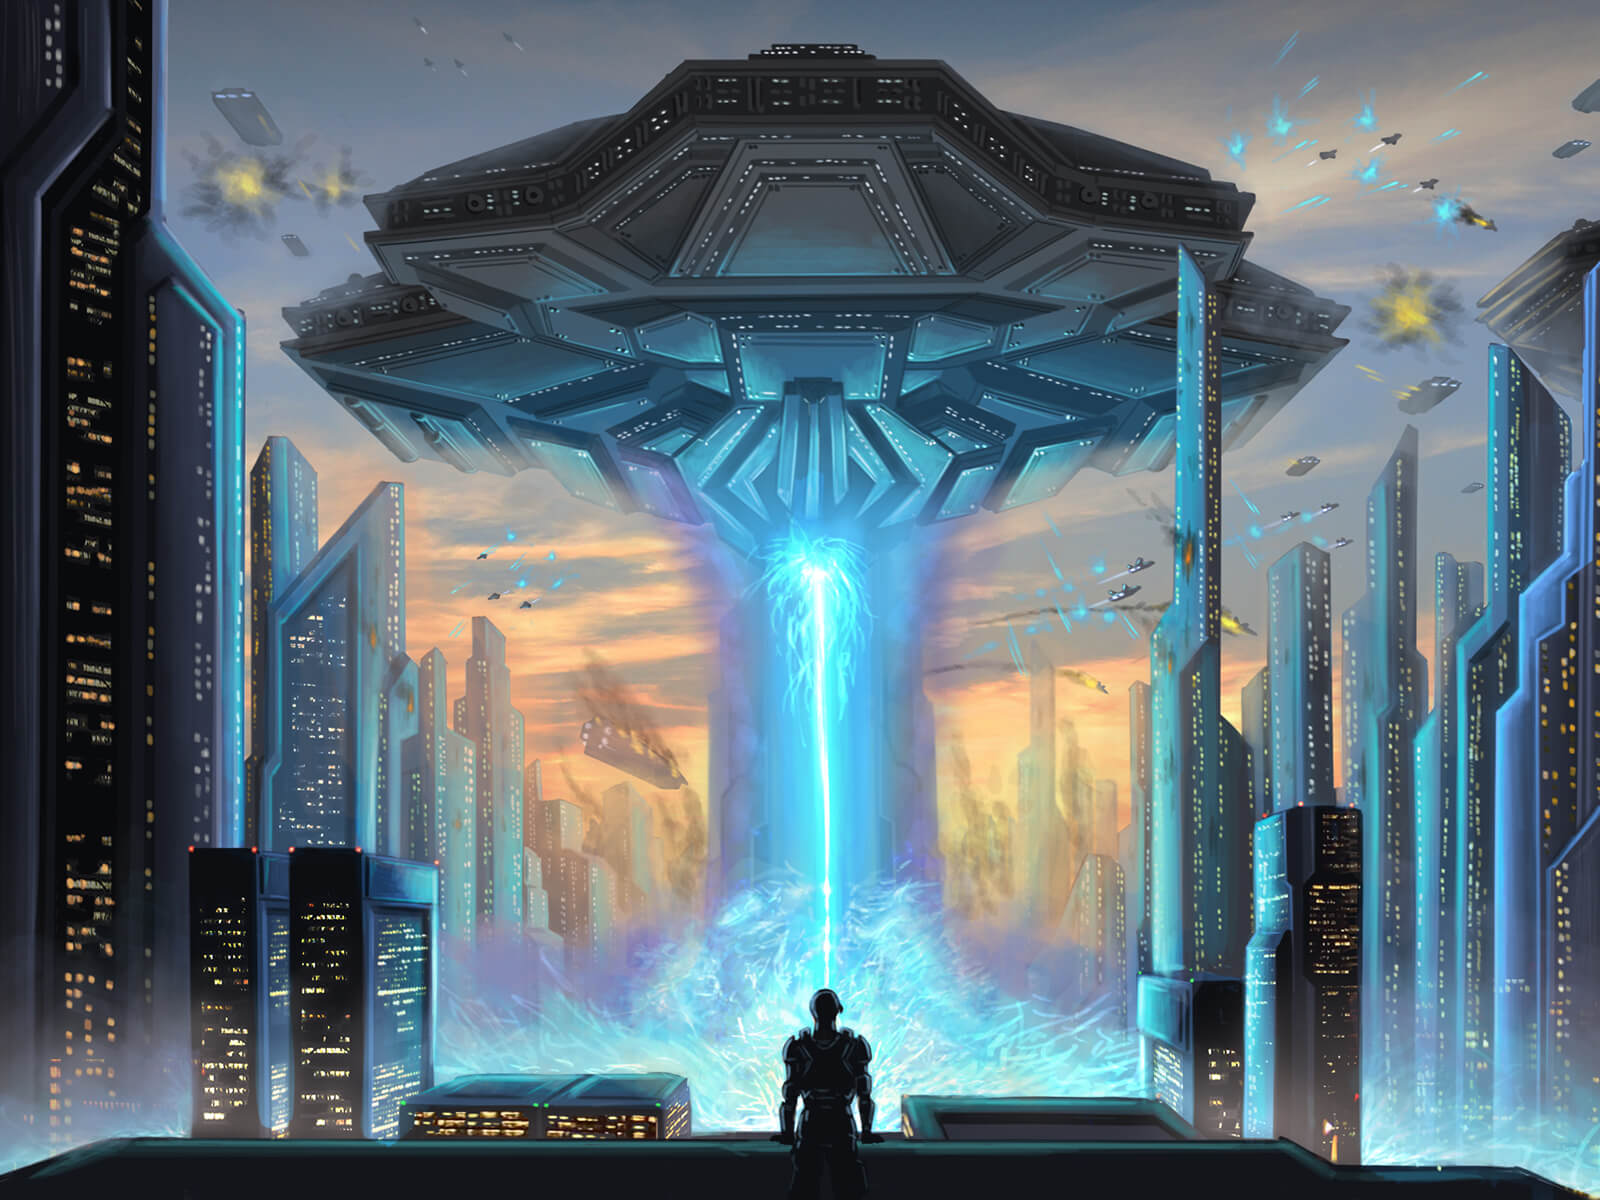 digital painting of an alien airship raining blue fire upon a city while a solitary person watches from a roof top